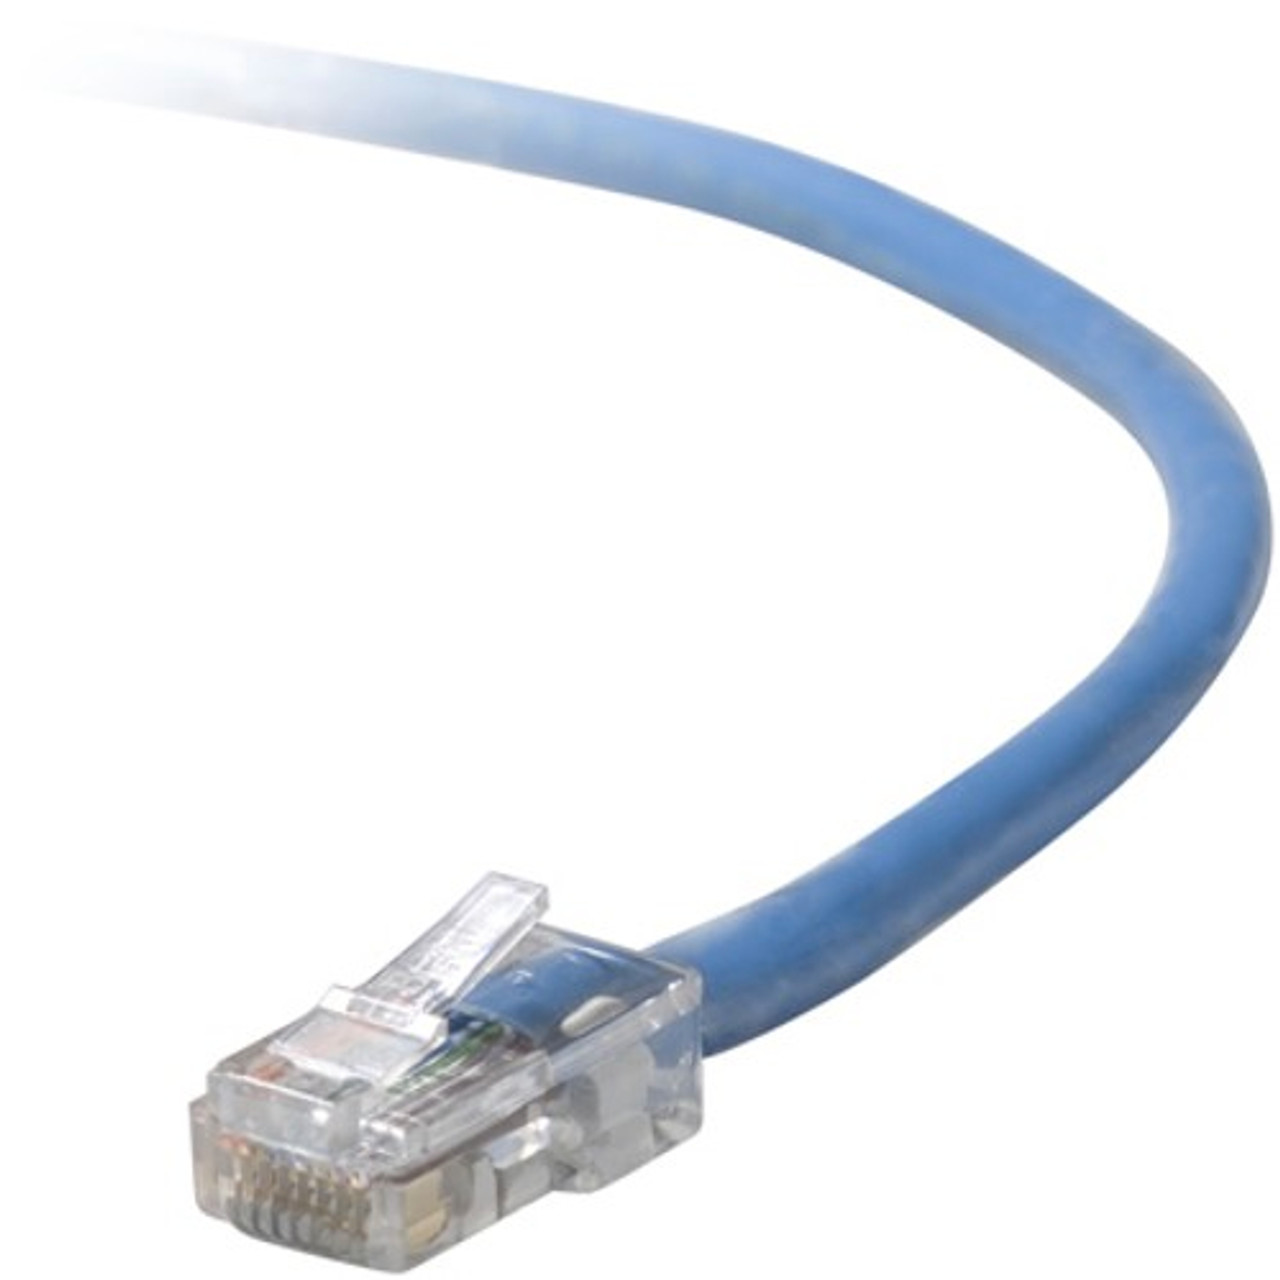 Belkin Patch CAT 5e  RJ-45 Cable Blue Patch Cable 15ft